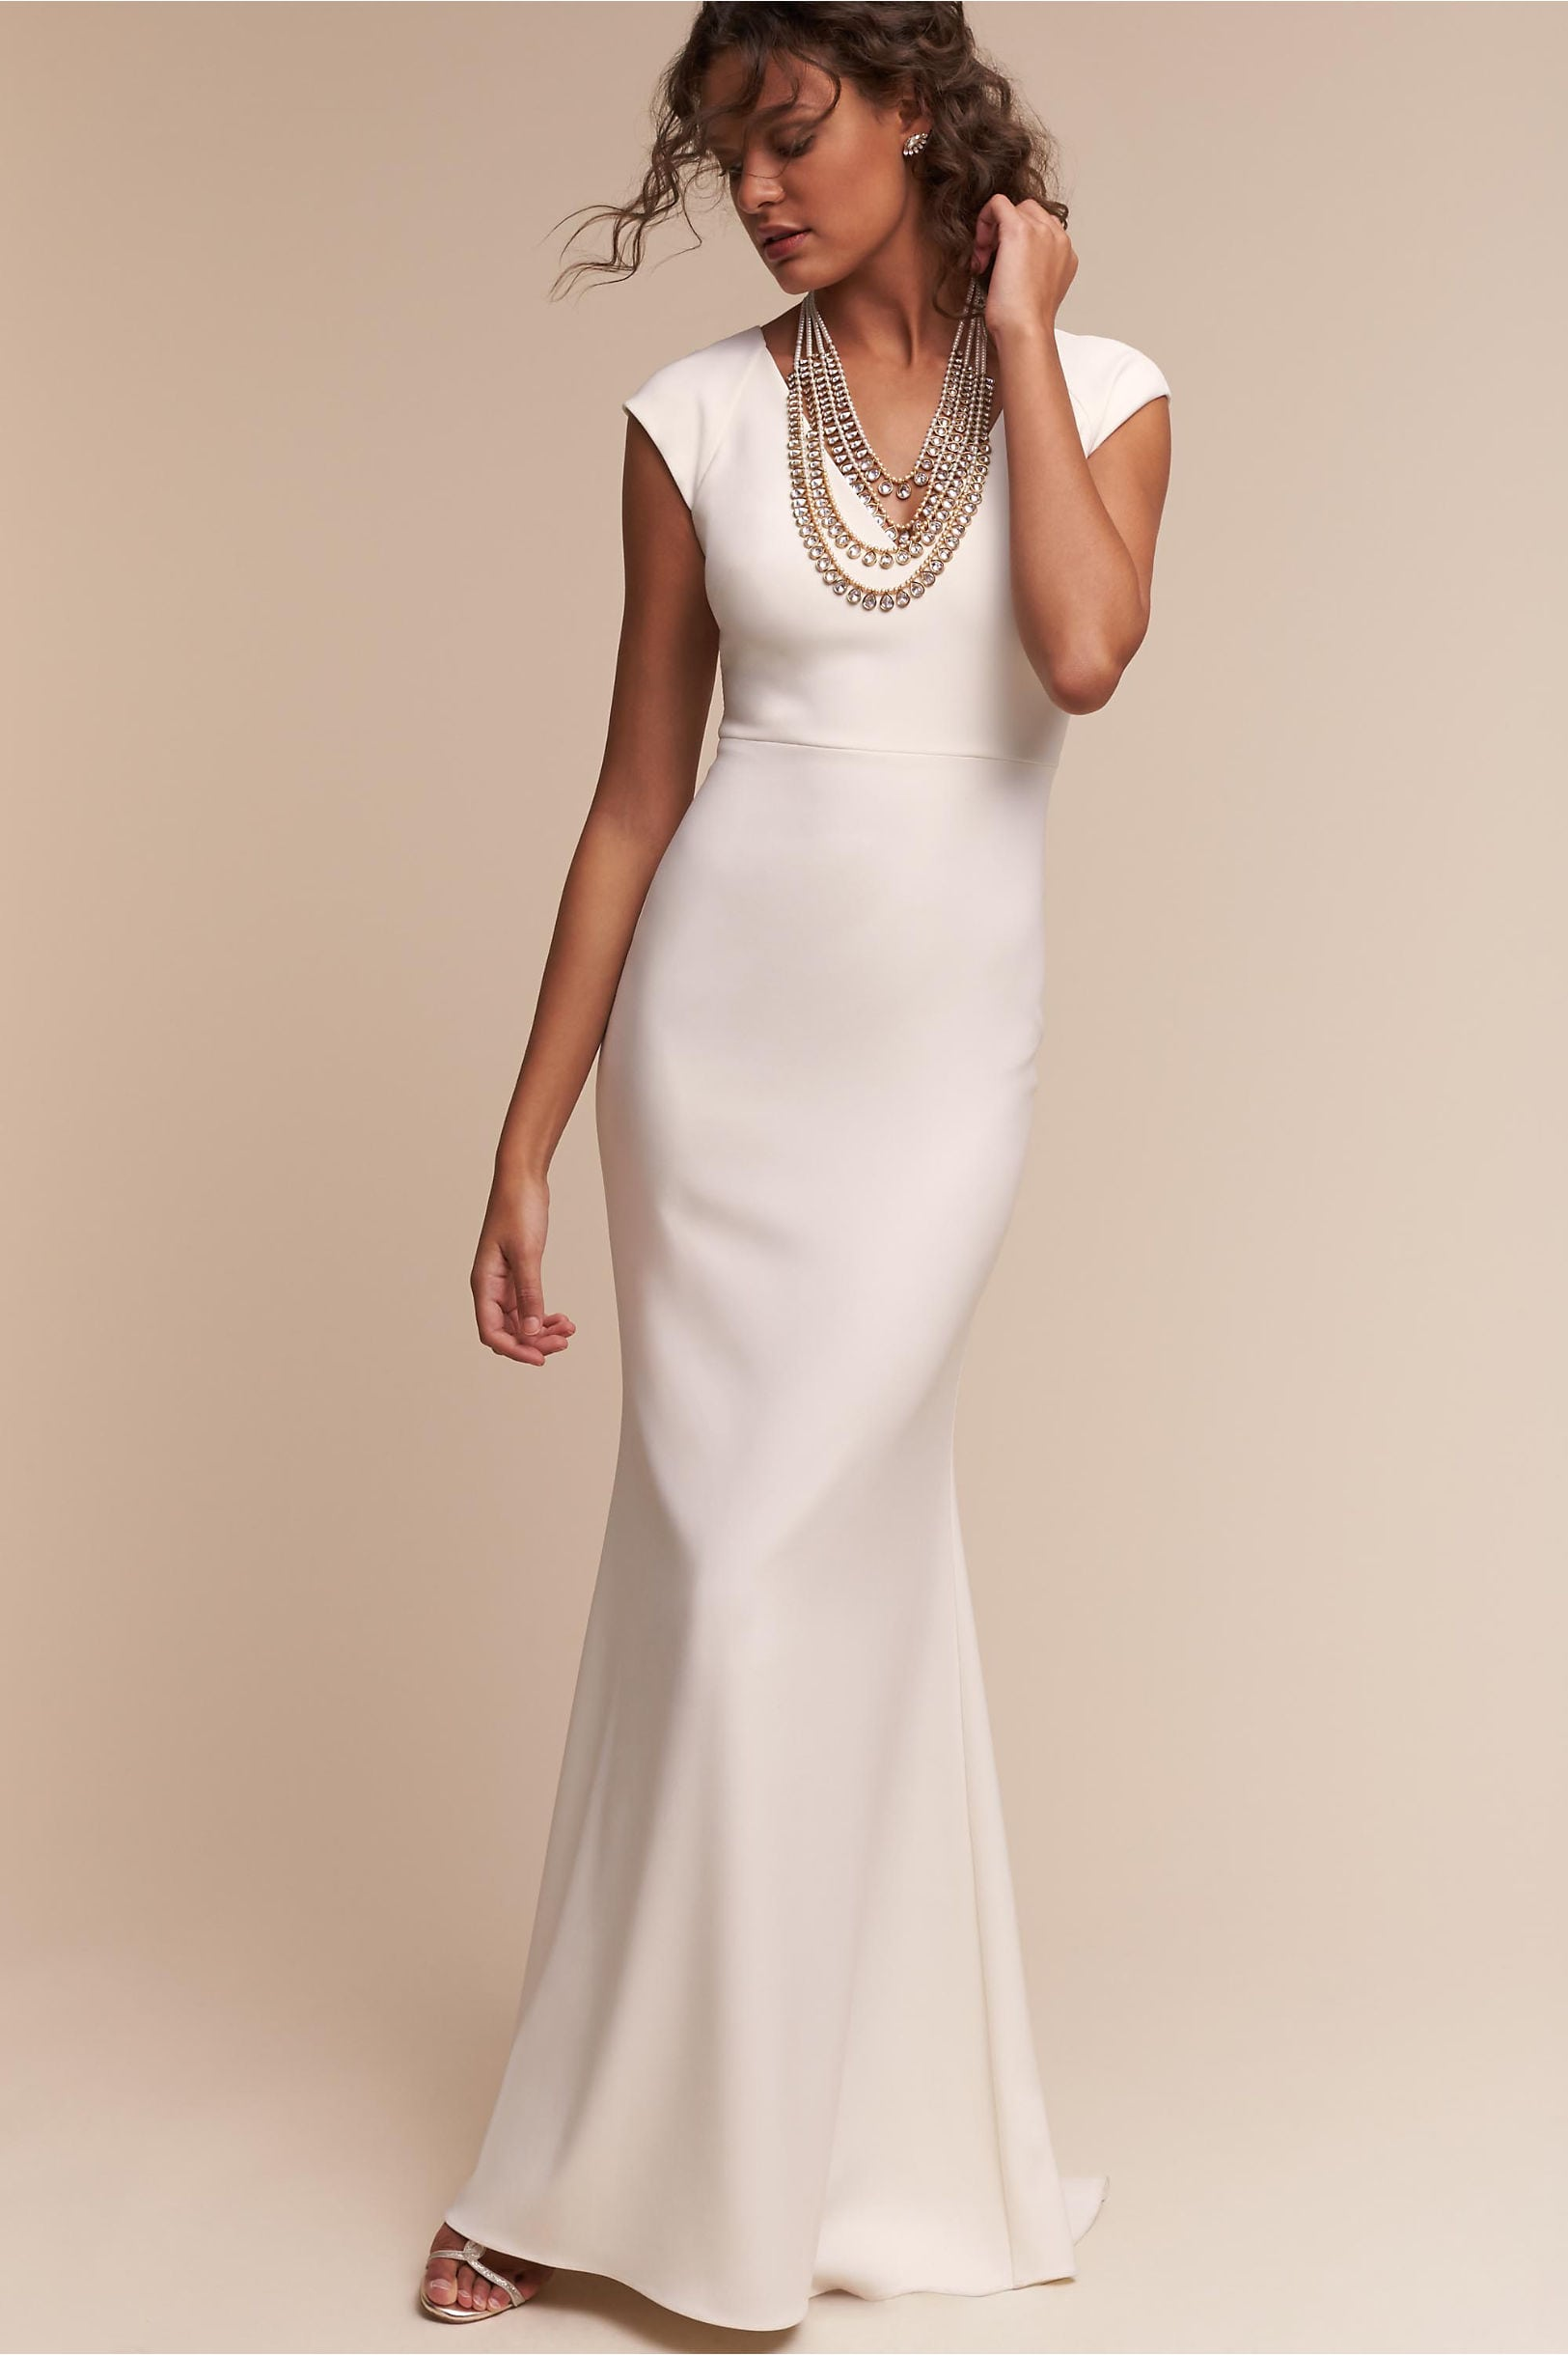 A woman wears a v-neck white column dress with cap sleeves and a large statement necklace